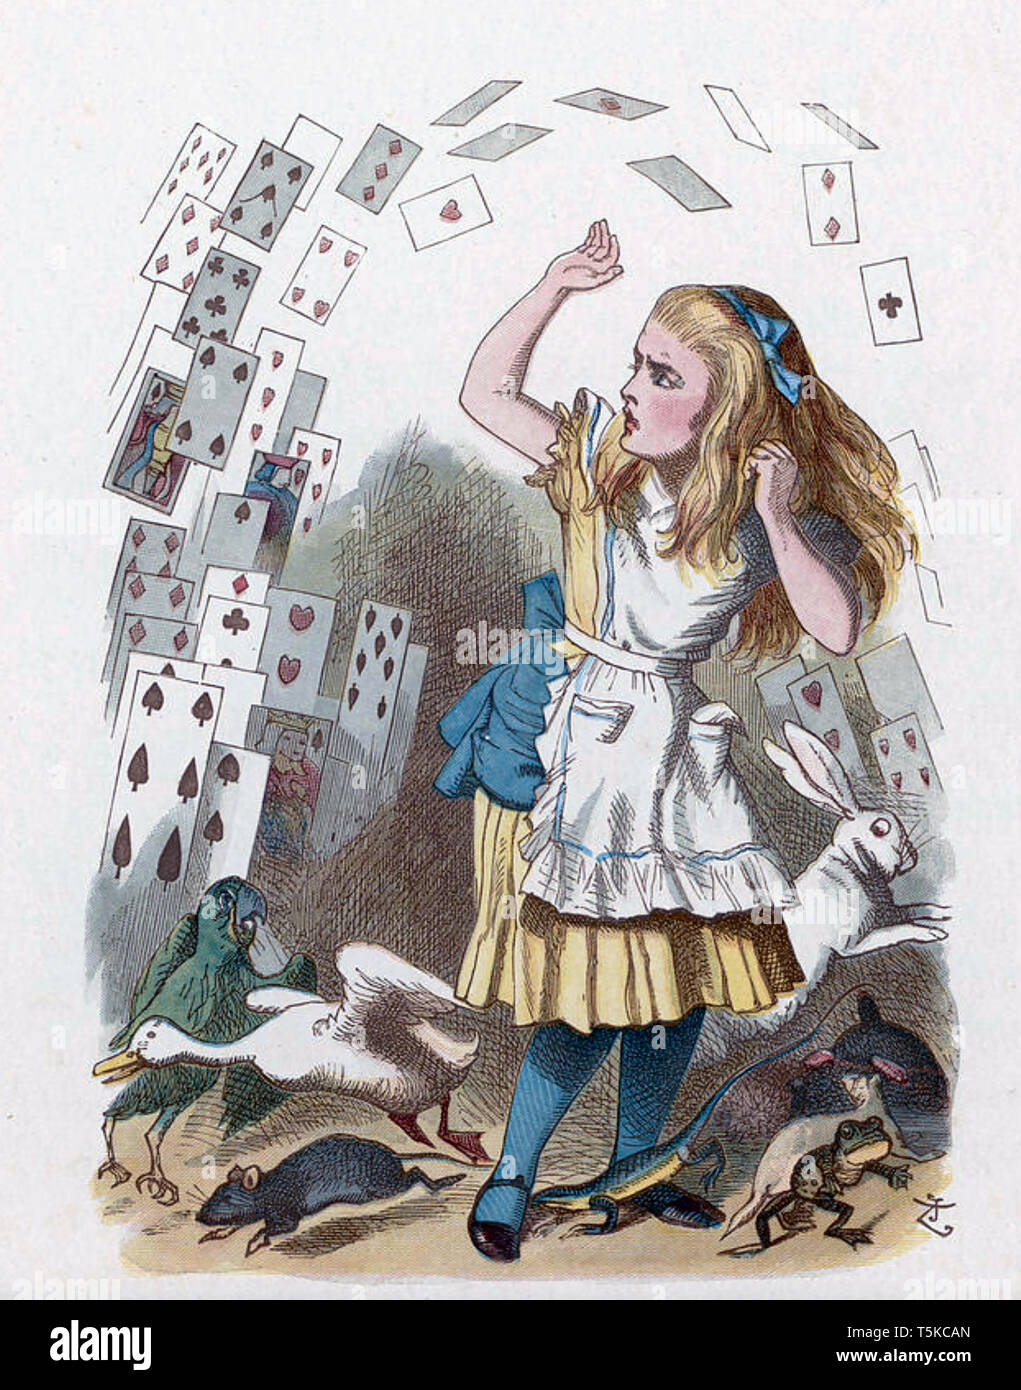 ALICE'S ADVENTURES IN WONDERLAND In Chapter 14 Alice encounters a shower of cards - Stock Image